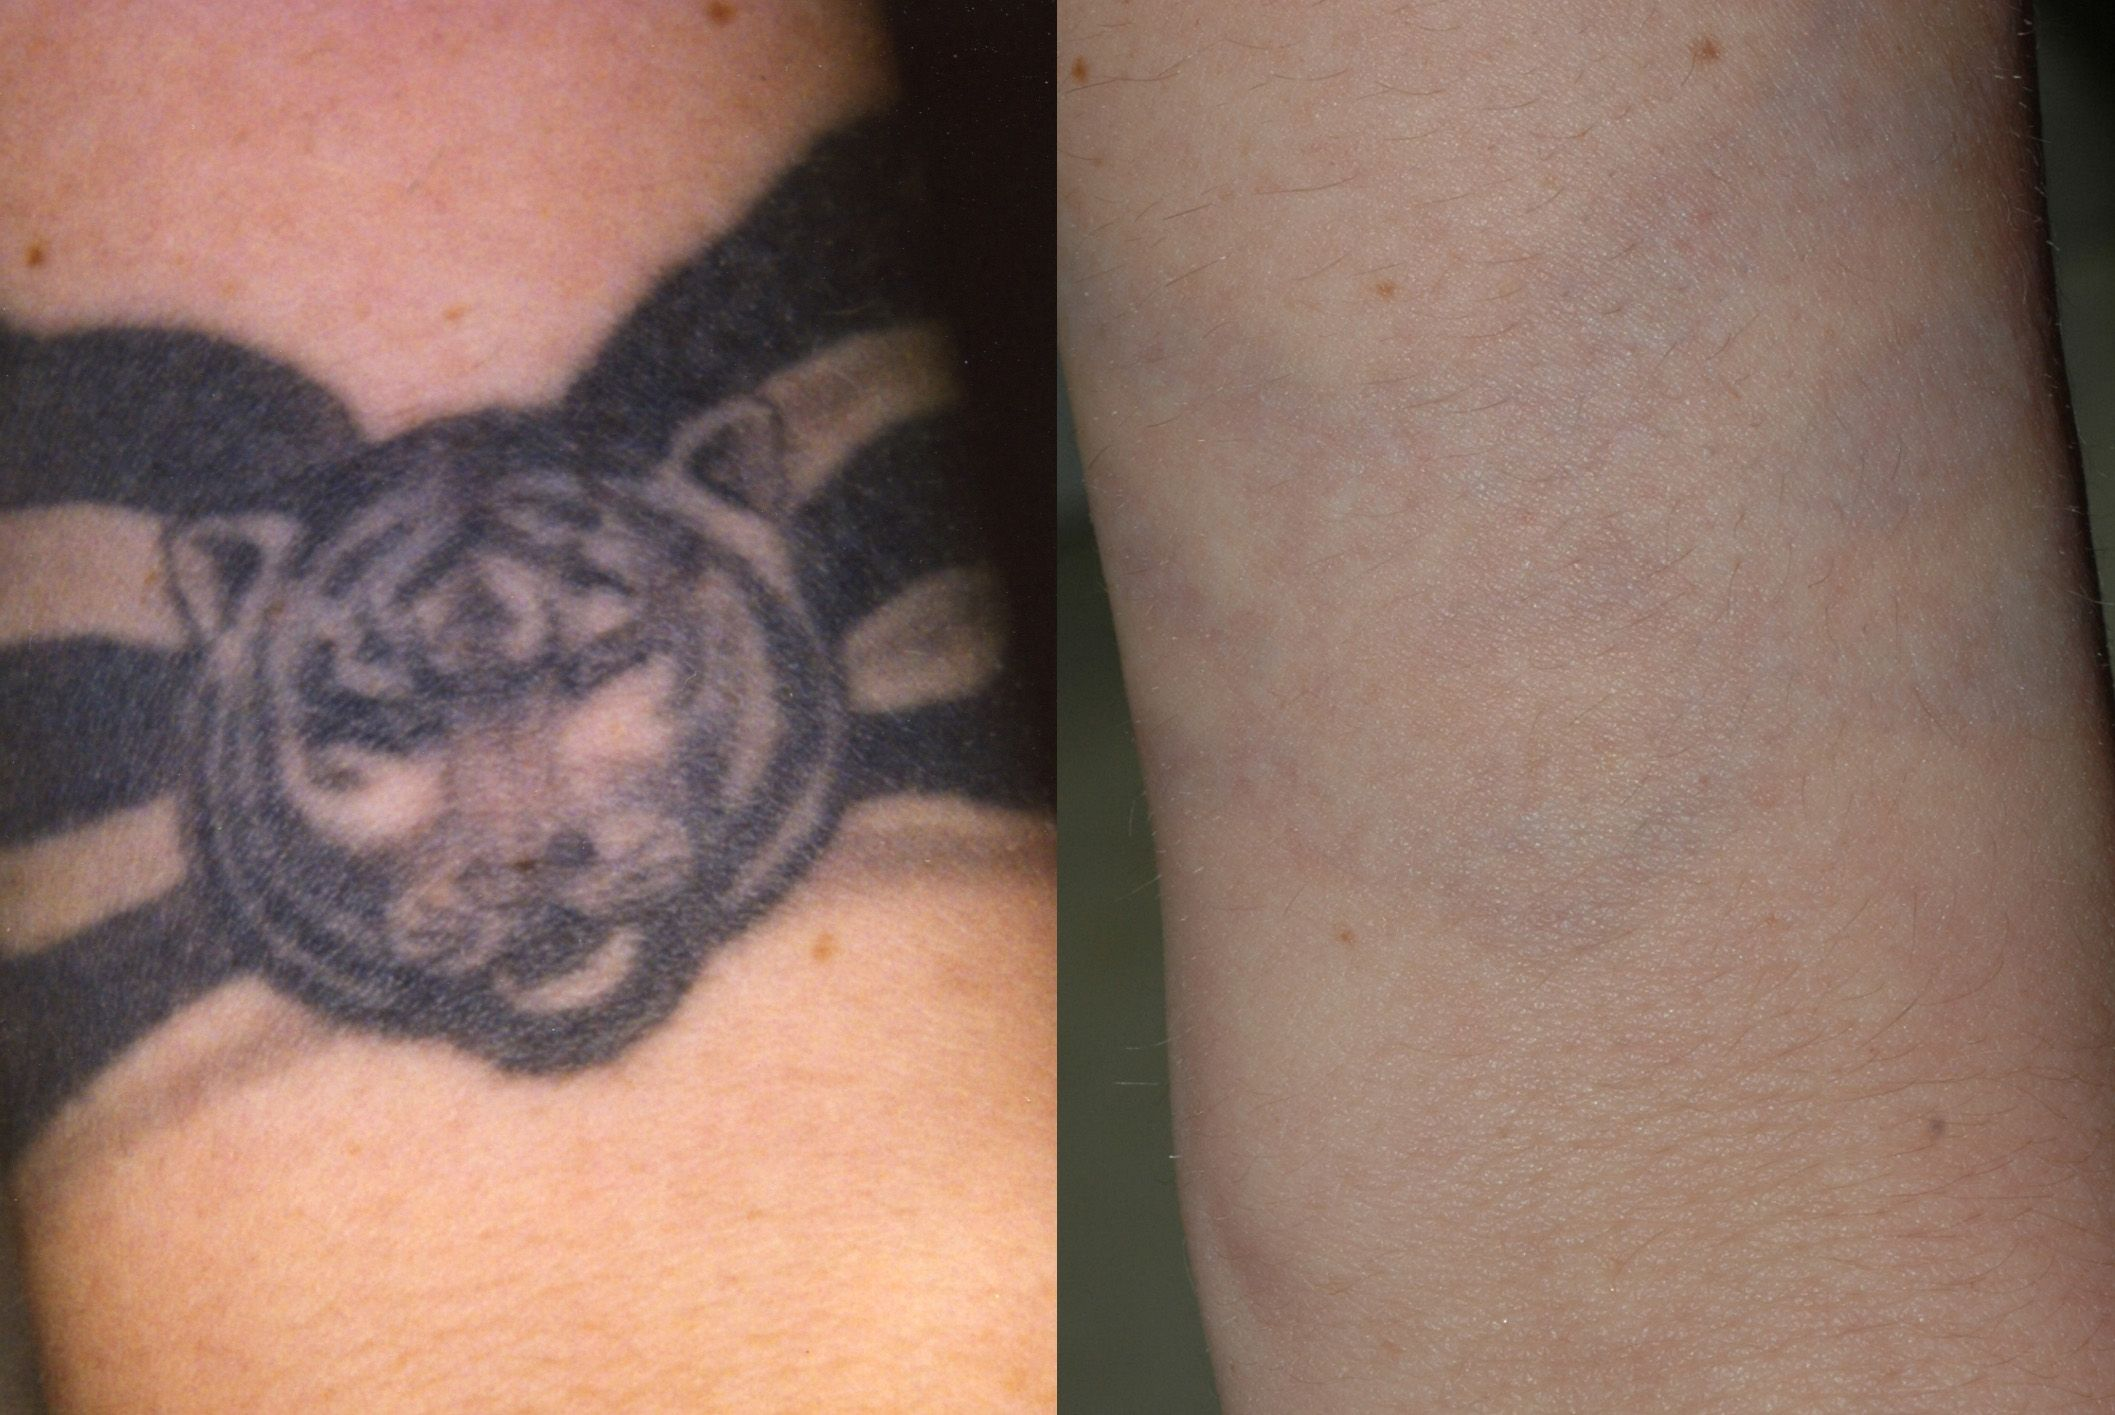 Tattoo Temoval Before And After Pictures Tattoo removal